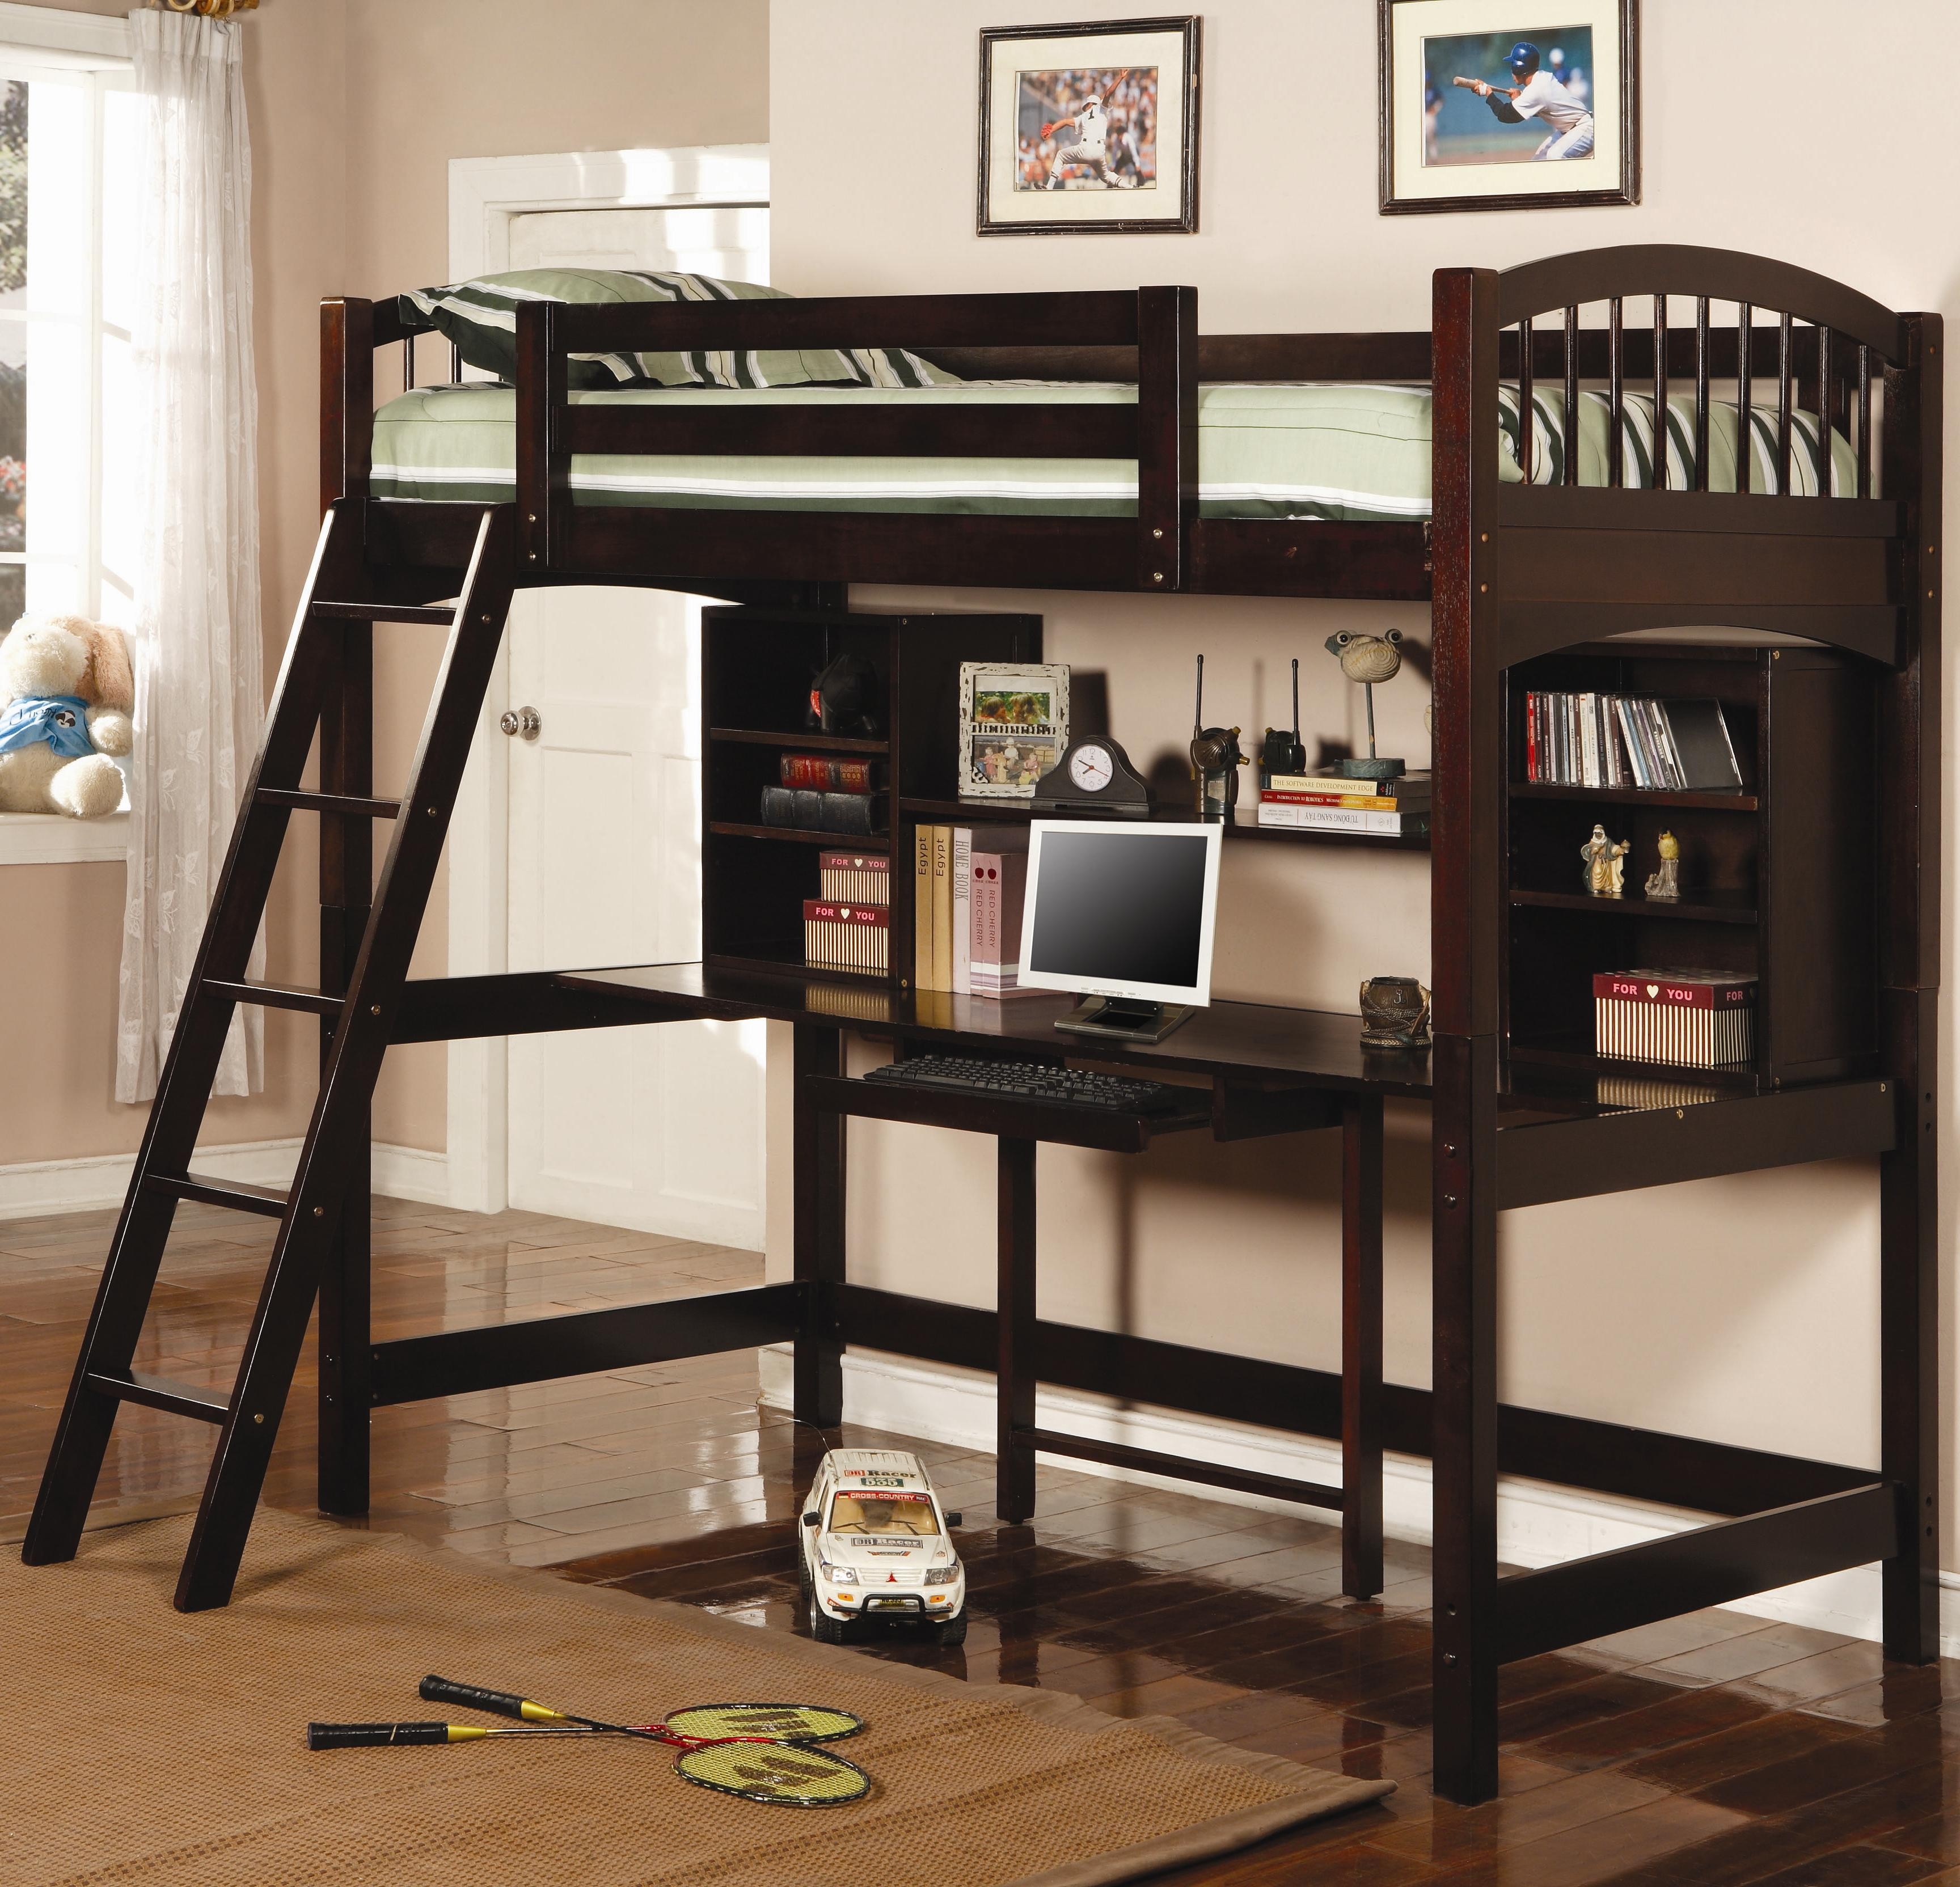 Bunks Twin Workstation Bunk by Coaster at Northeast Factory Direct